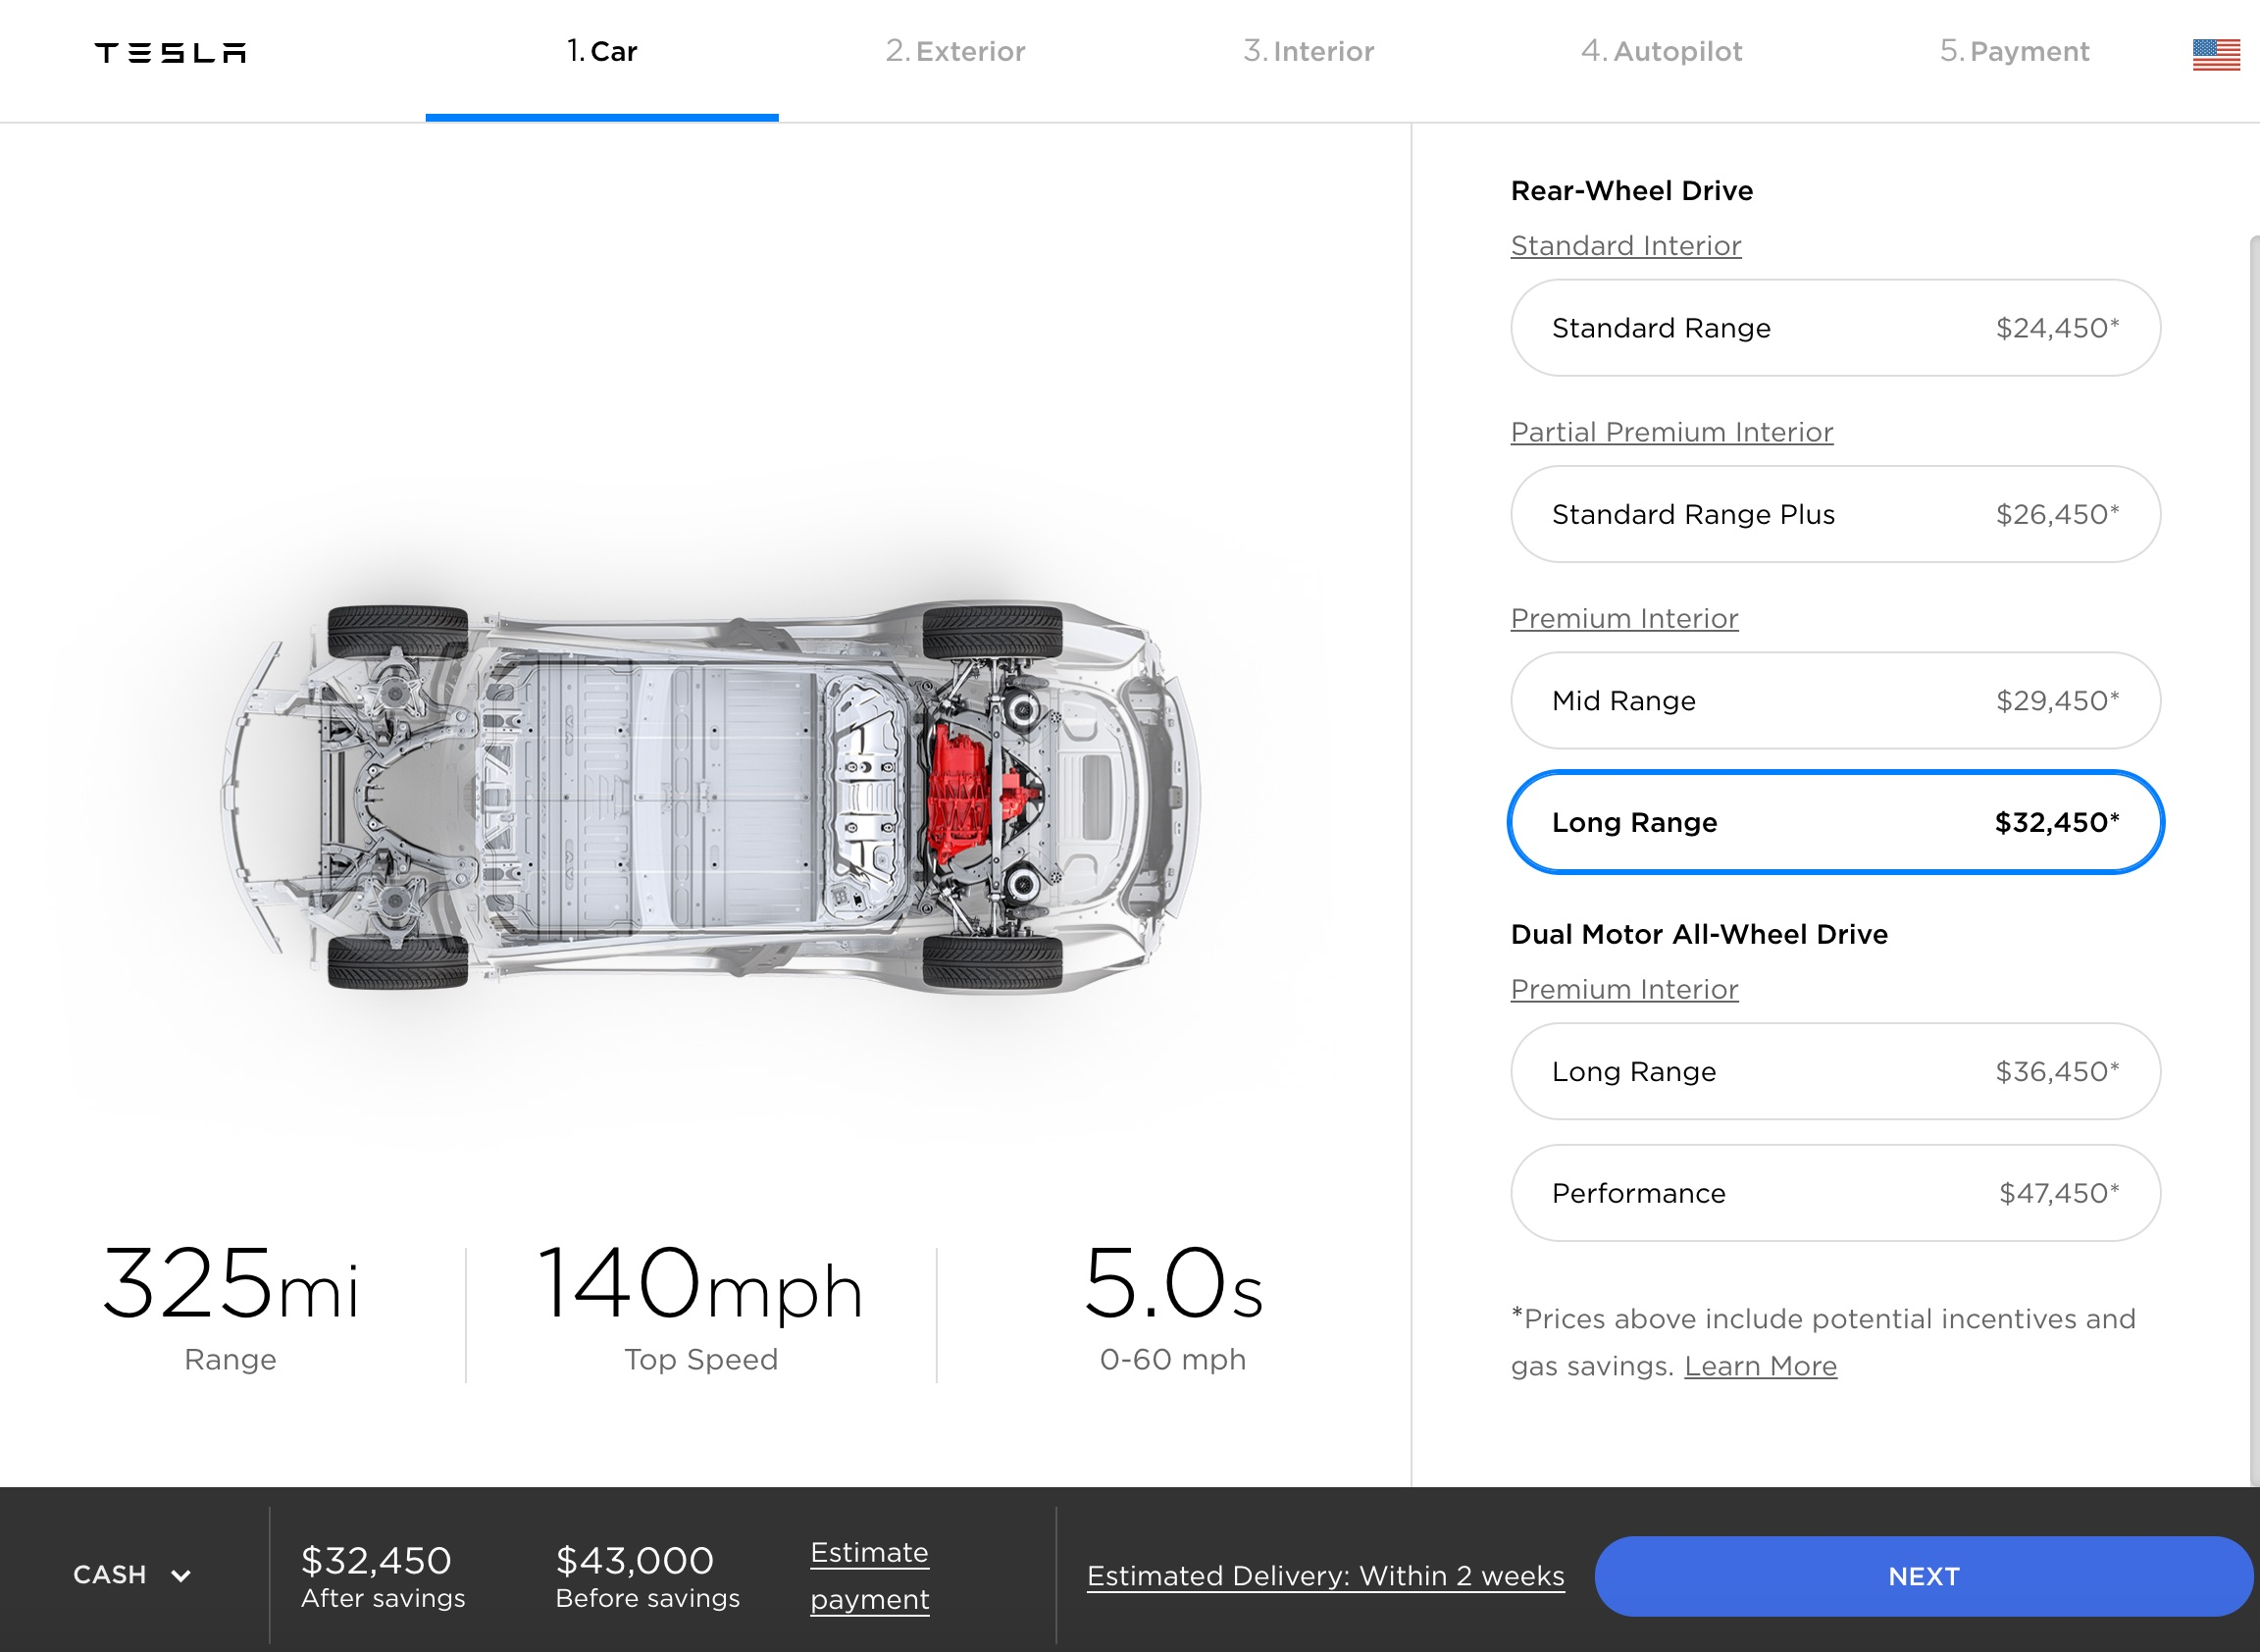 68172cf5 This will likely be a notable perk for the Model 3's first adopters, as the  Long Range RWD was the only variant available for the vehicle during the  initial ...